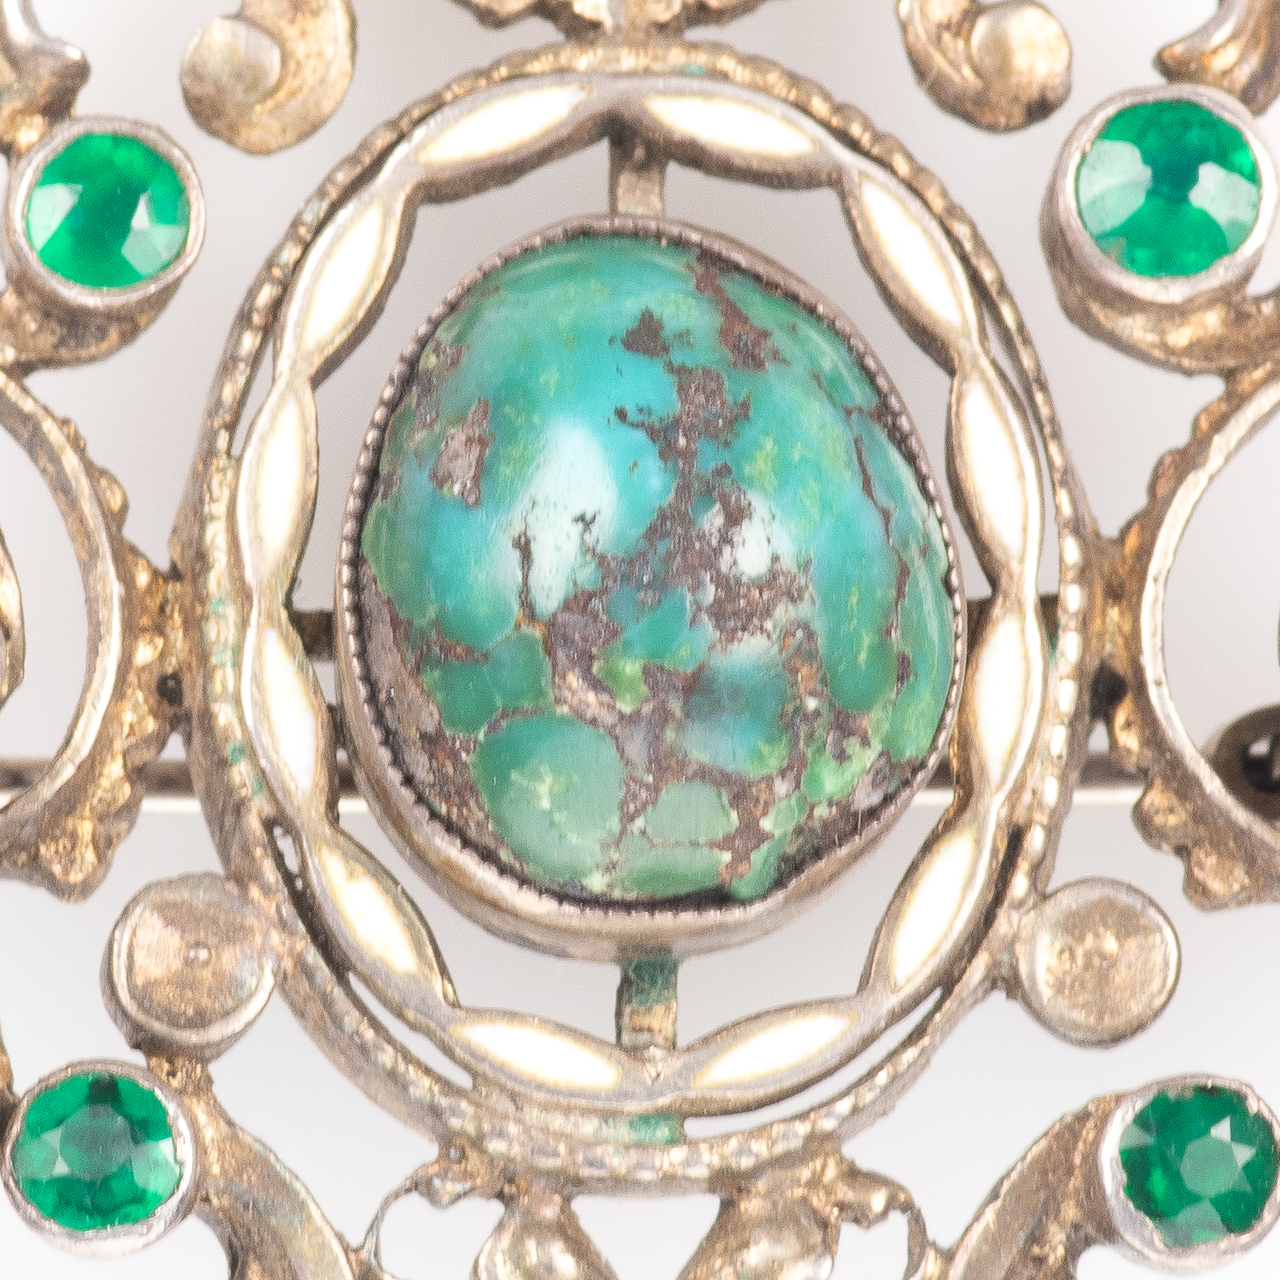 Austro-Hungarian 935 Silver Emerald, Amethyst & Turquoise Brooch - Image 3 of 6